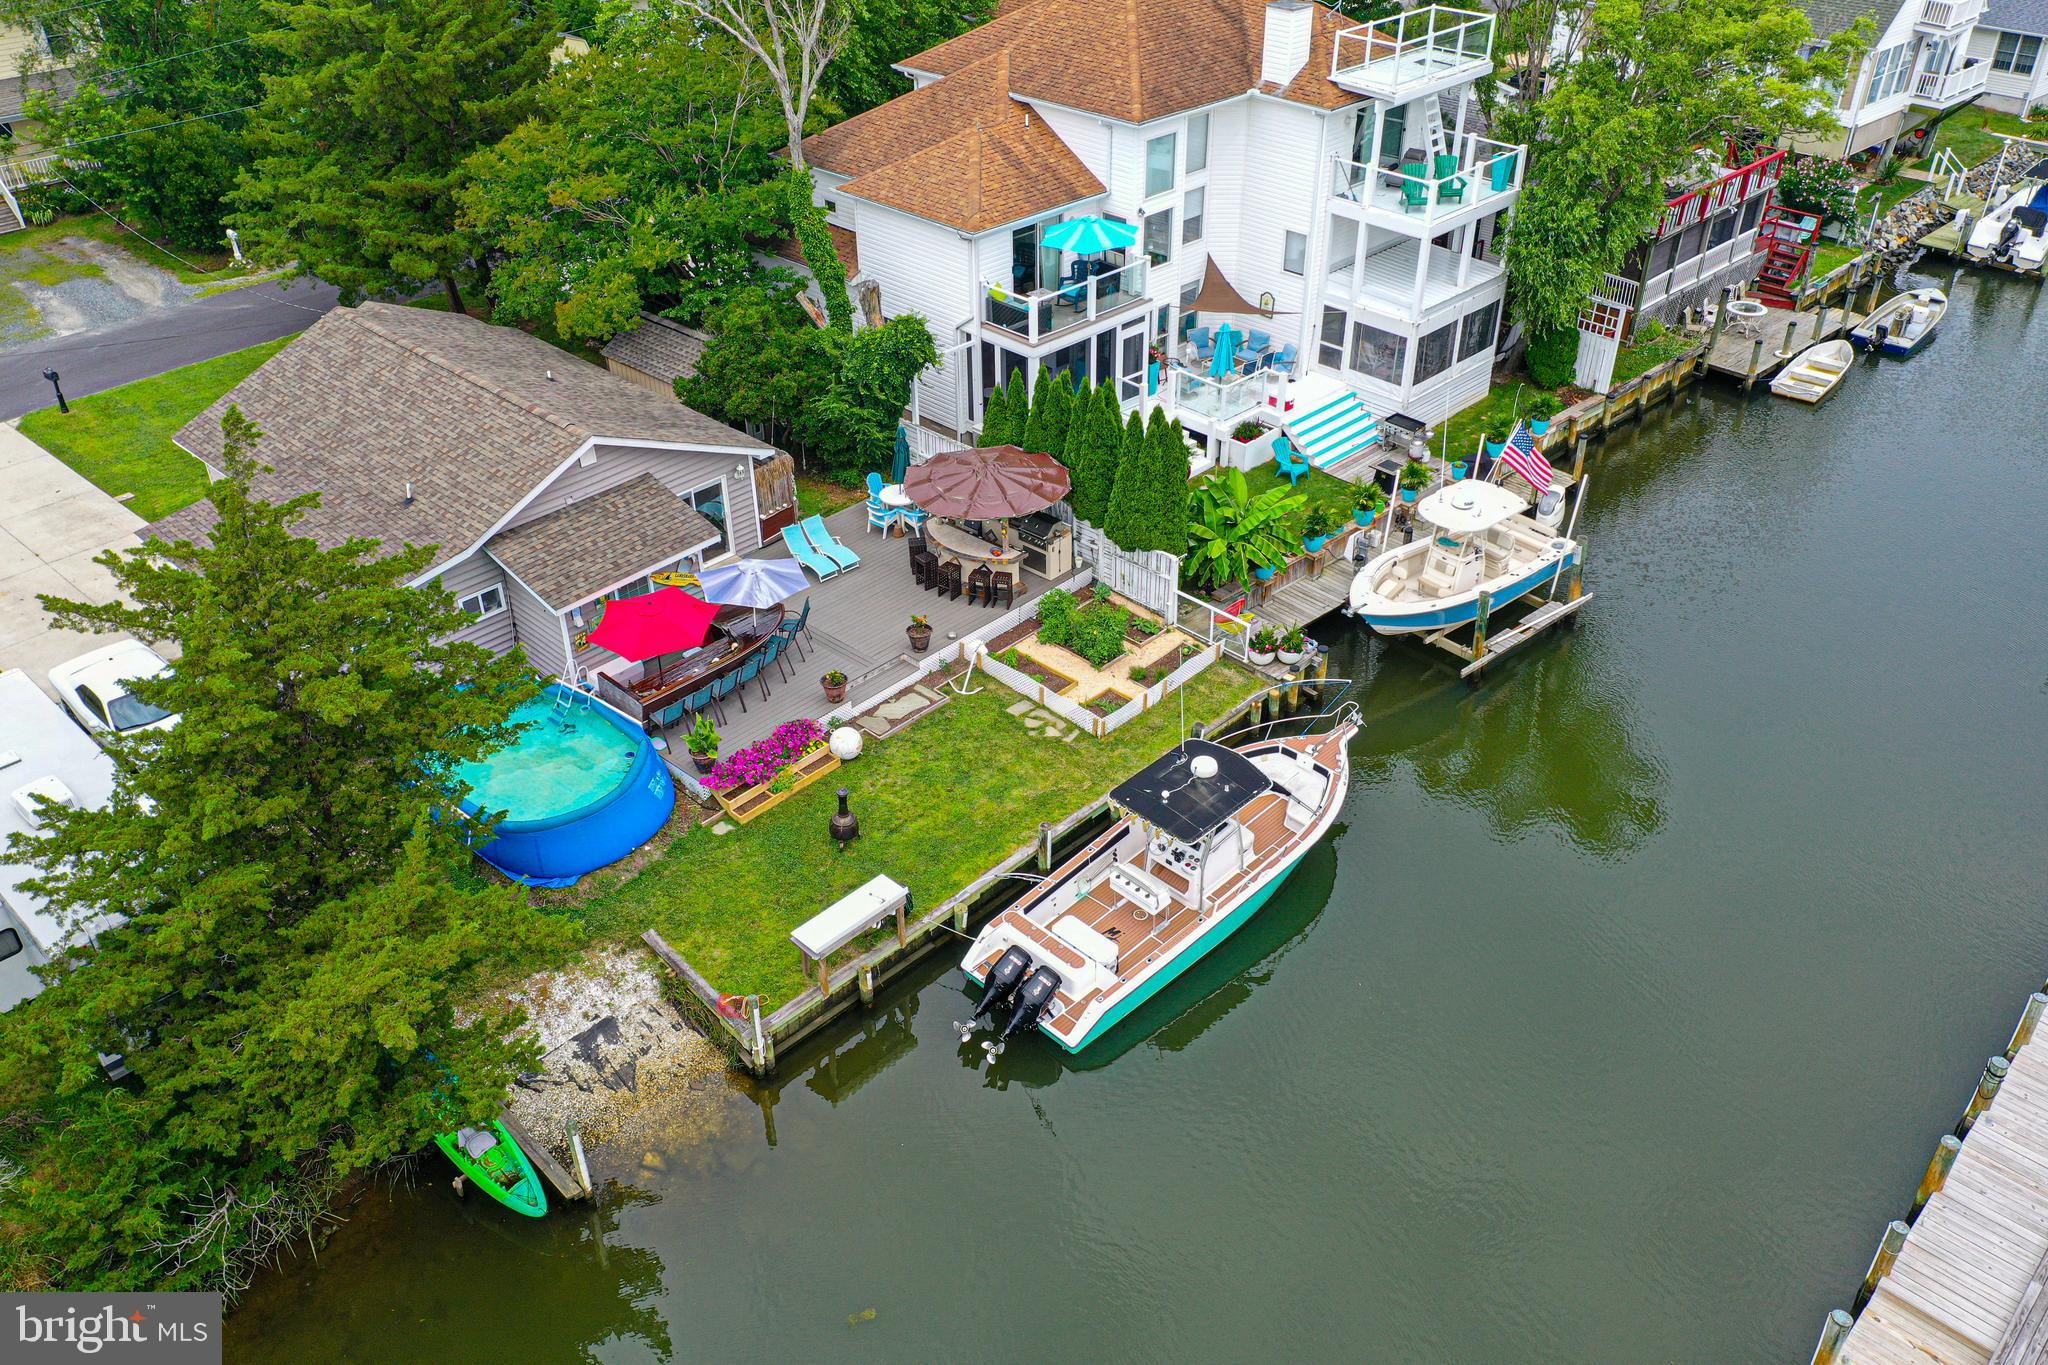 West Ocean City Waterfront Oasis with extensive outdoor living.  This amazing home offers beautiful Hardwood floors, ceramic tile, granite counters, Stainless steel appliances, custom cabinets, custom bathrooms with tile surrounds, granite tops and custom vanities.  The outside living space is awesome w/outdoor shower, large deck, built in grill, custom boat table and chairs, boat ramp, fish station and docking area.  Just a short distance to open bay!  The home is capable of future second floor expansion.  If you are looking for a home away from home on the water, then this one may be the one for you.